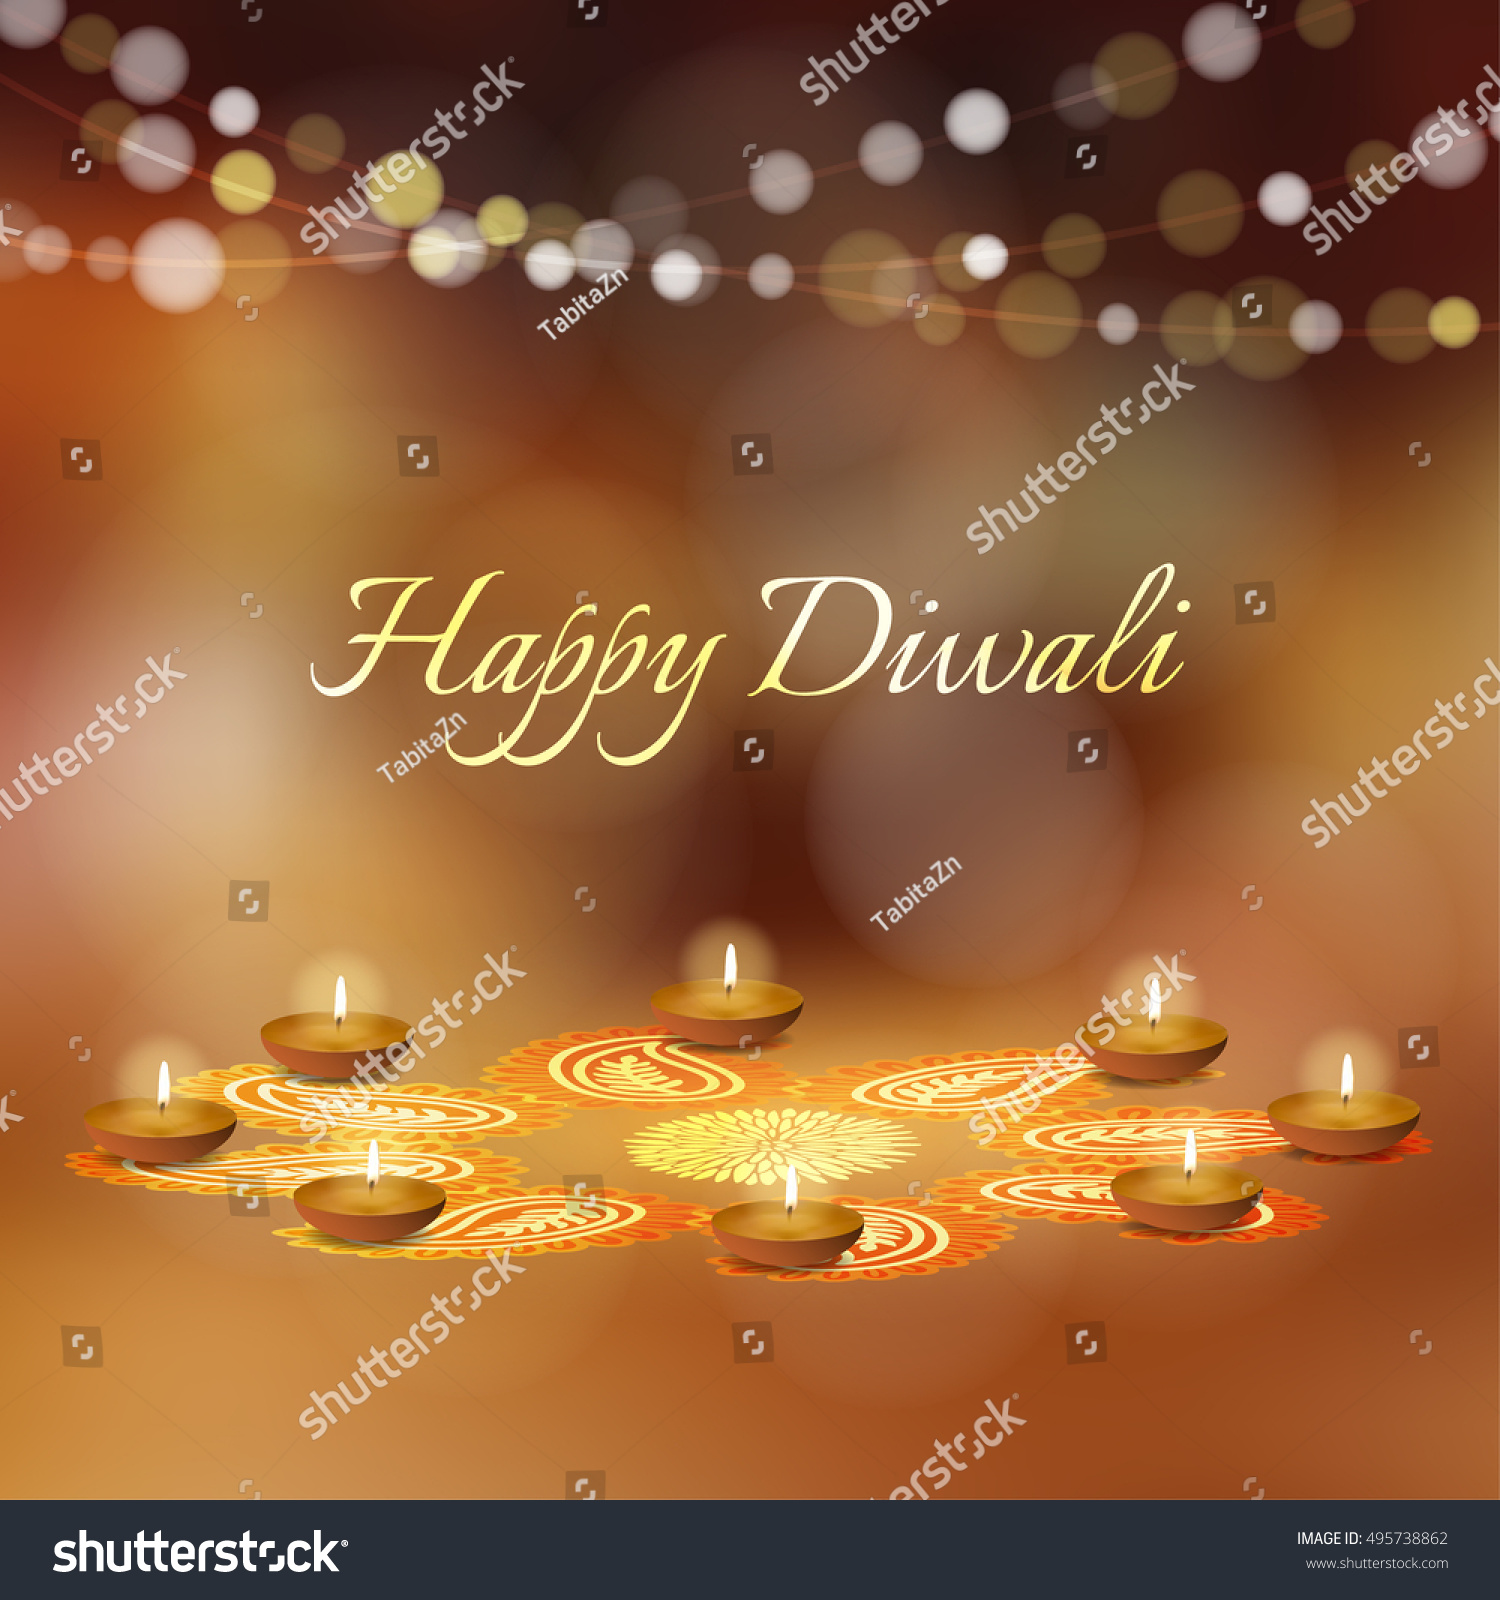 Happy diwali greeting card invitation indian stock vector 495738862 happy diwali greeting card invitation indian festival of lights diya oil lit lamps m4hsunfo